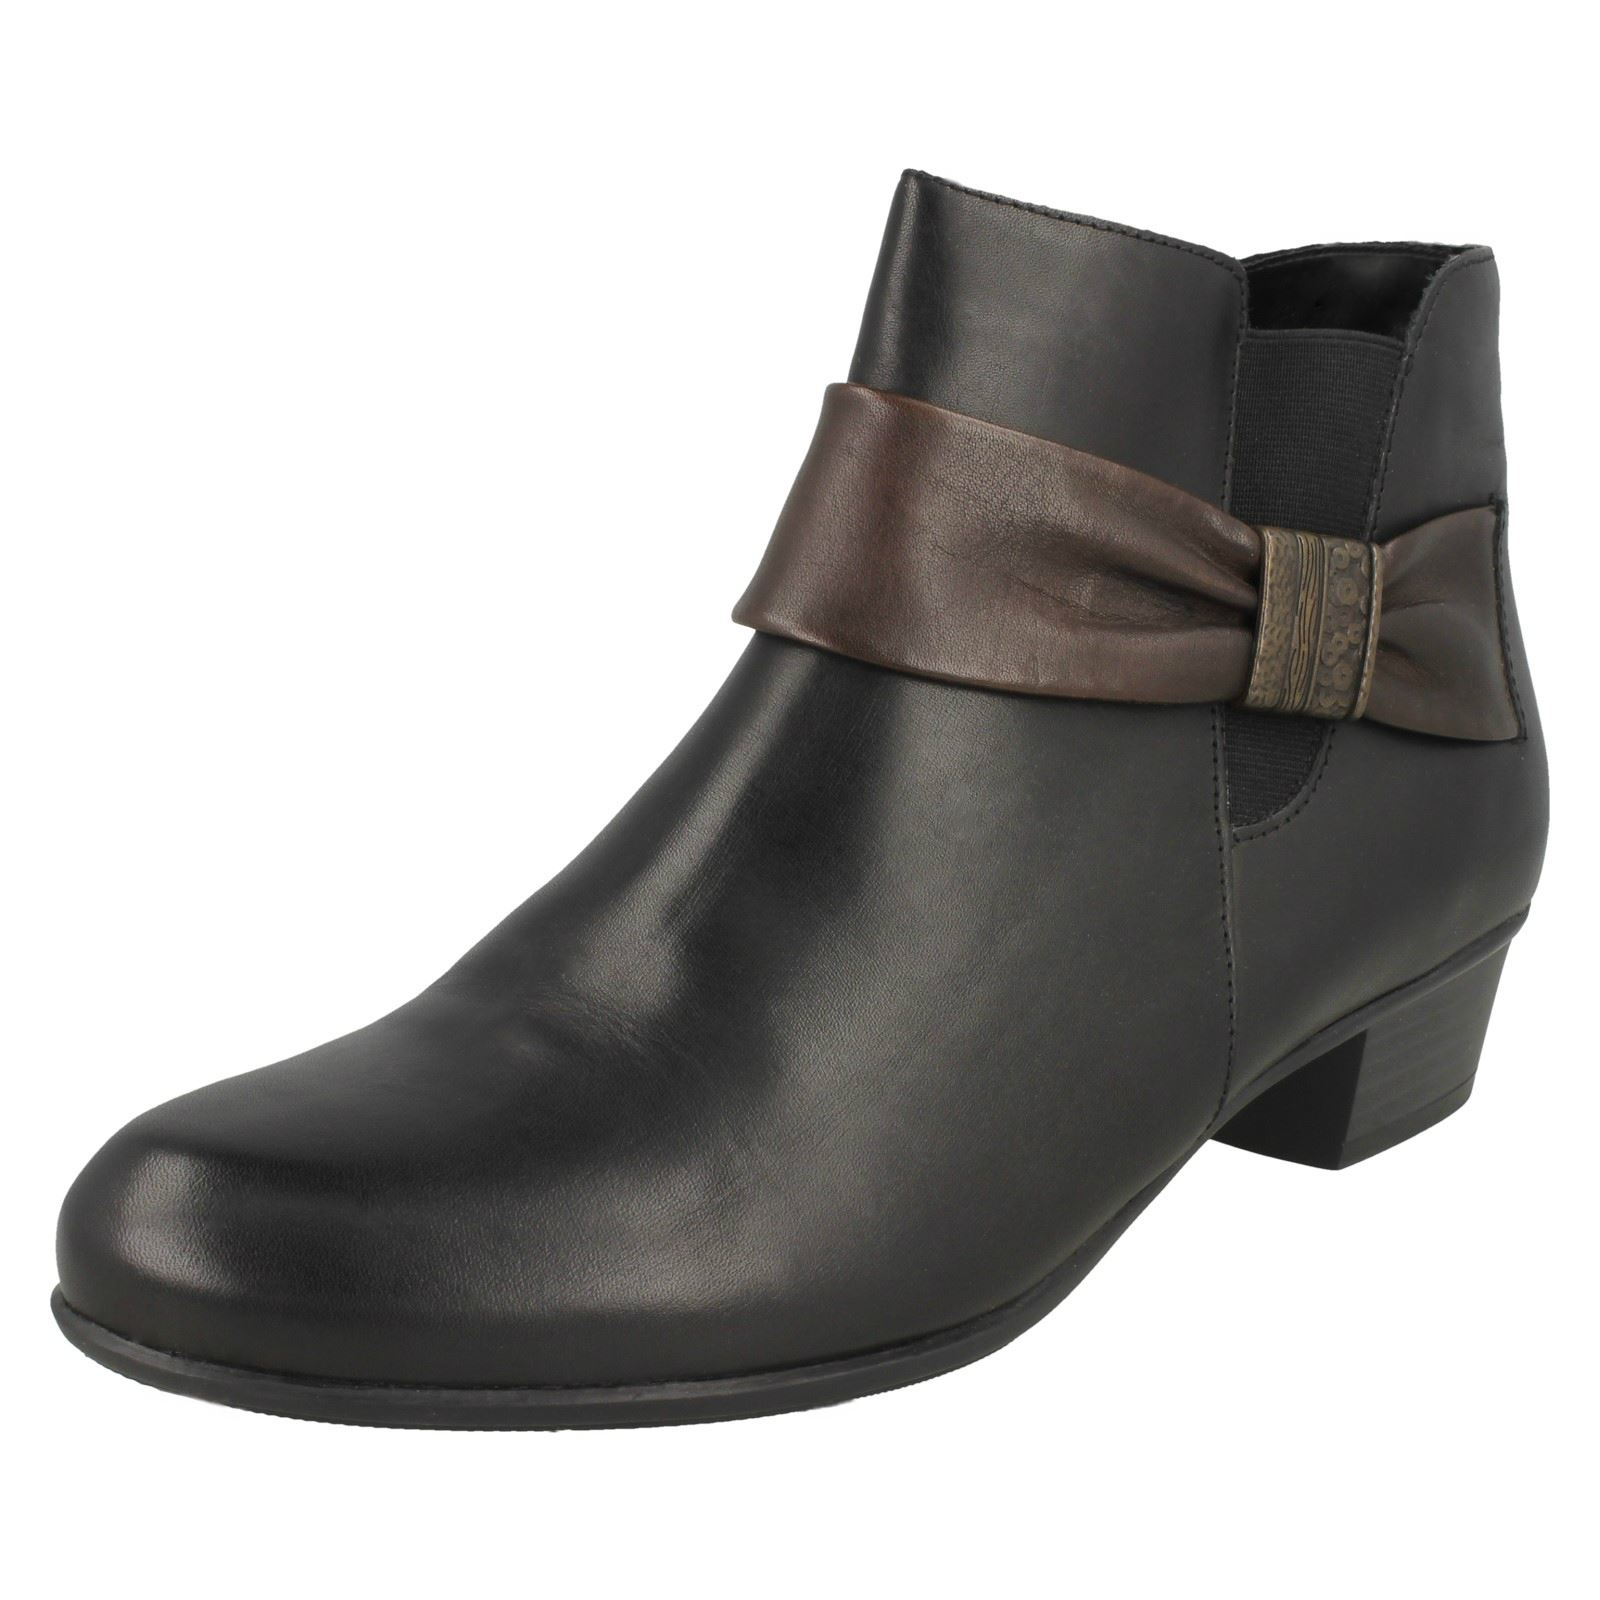 Zapatos especiales con descuento Ladies Remonte Leather Bow Detail Low Heel Ankle Boots - D6571